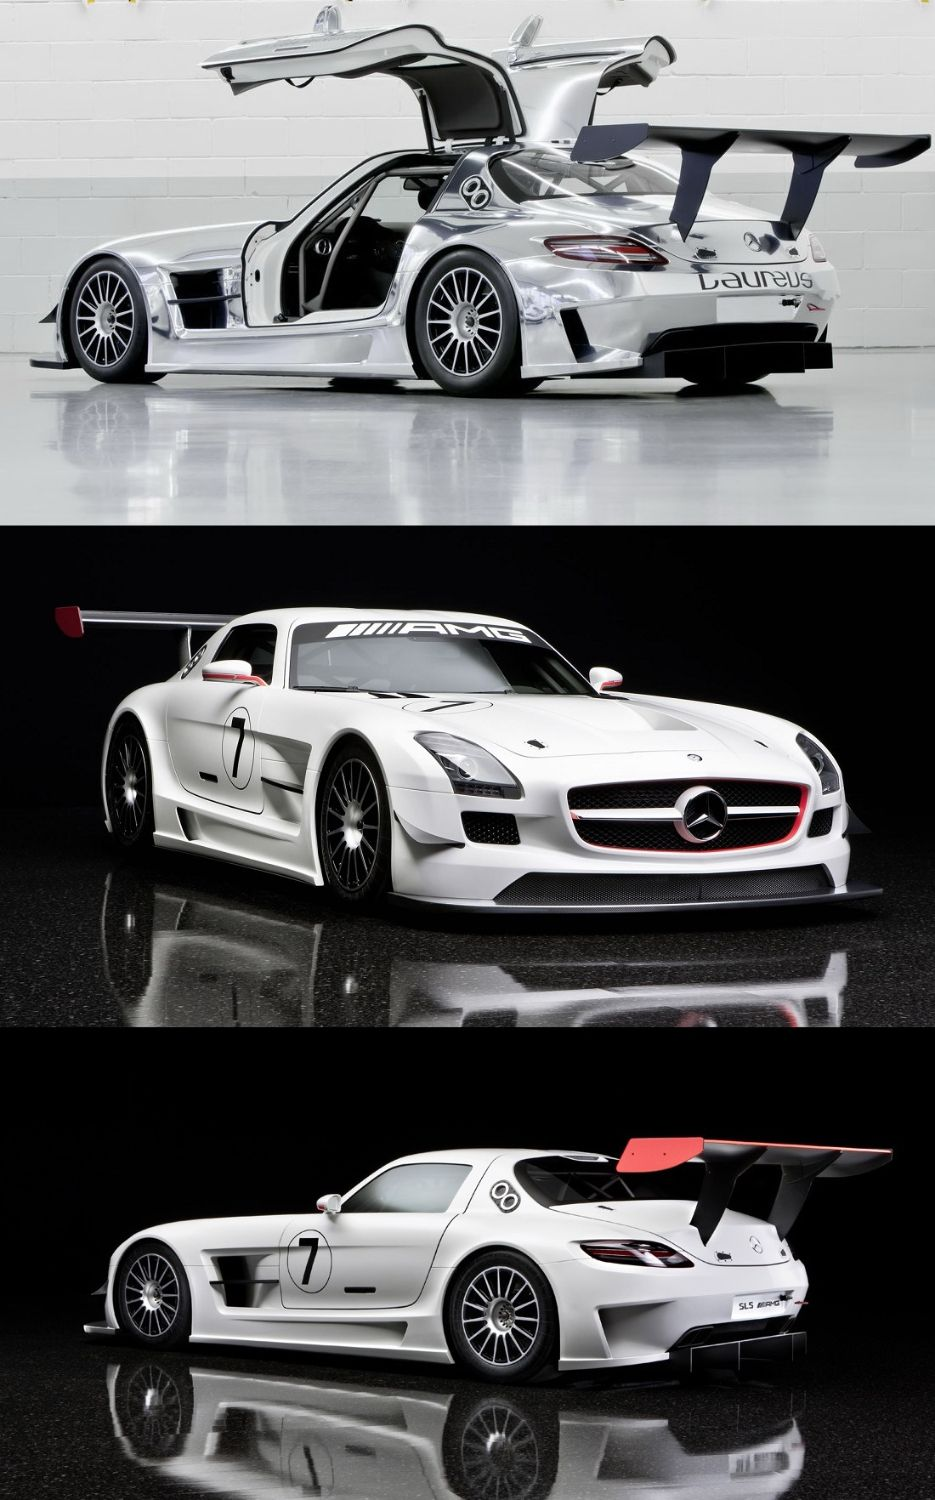 Mercedes Benz Sls Amg Gt 2013 At Festival Of Speed Media Day